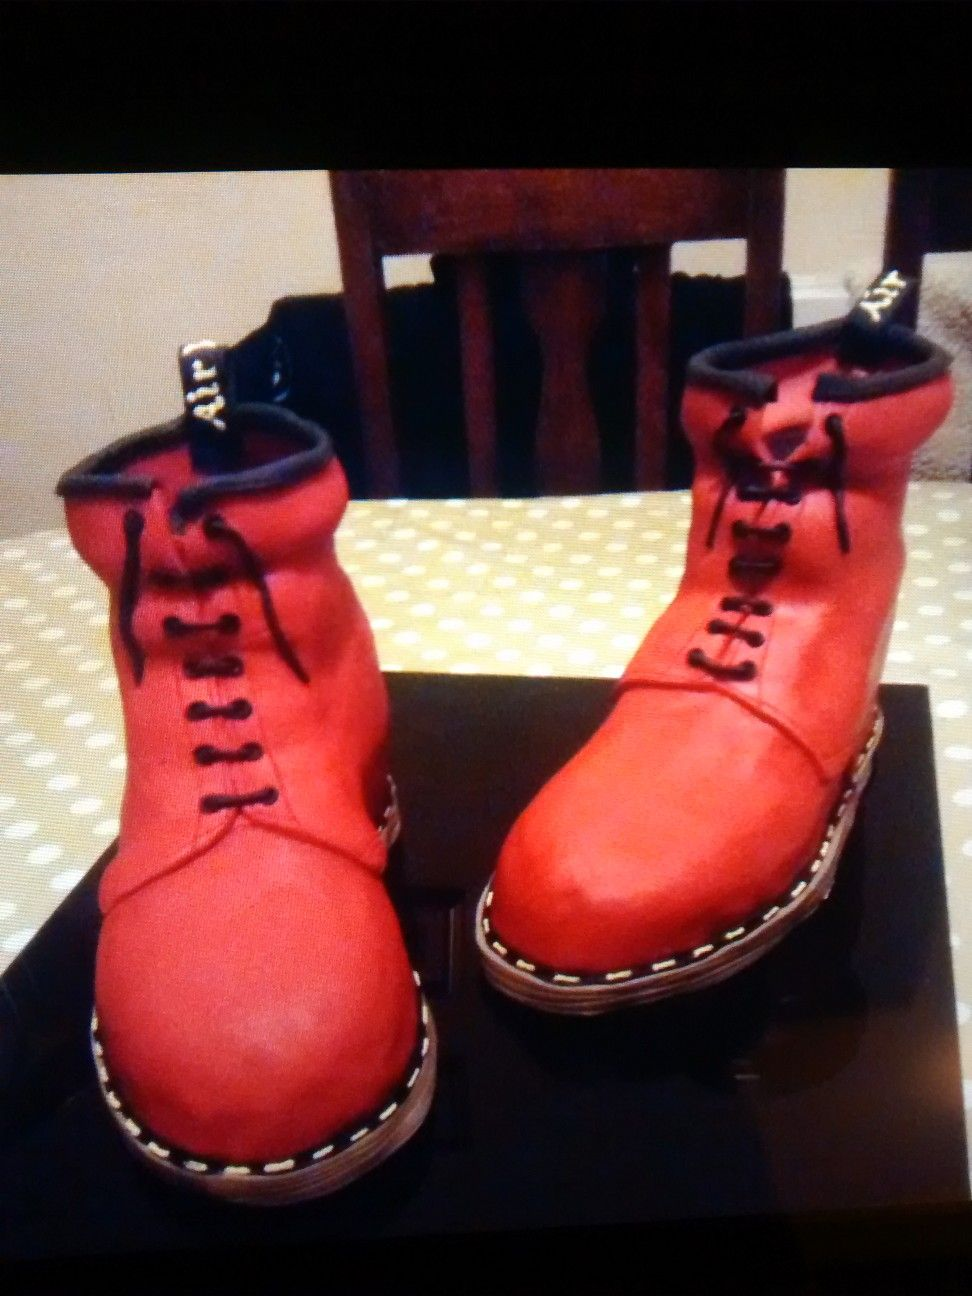 Cherry red dr martens cake boot cake boots combat